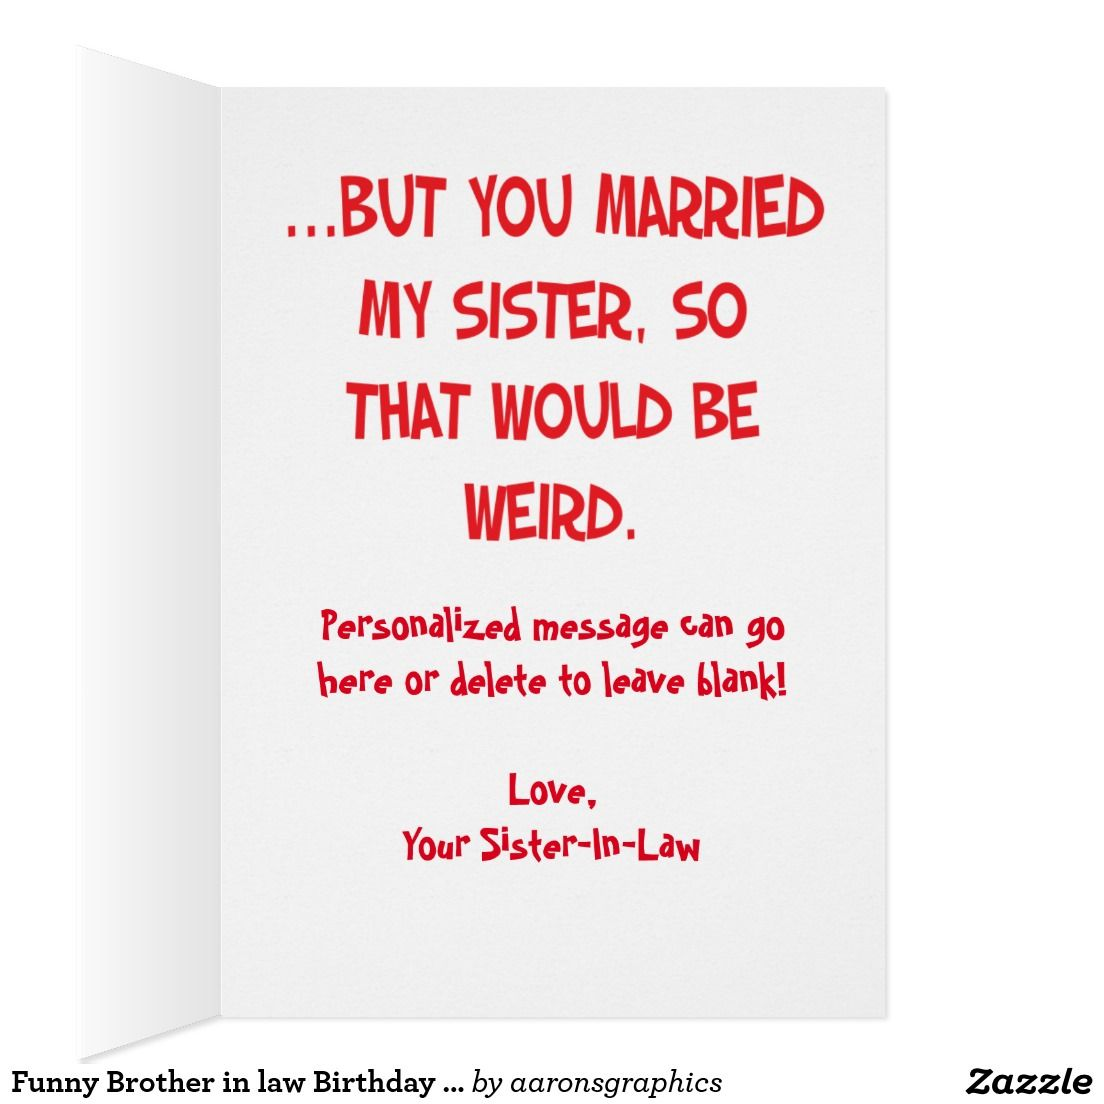 Funny brother in law birthday greeting card greeting cards funny brother in law birthday greeting card bookmarktalkfo Image collections